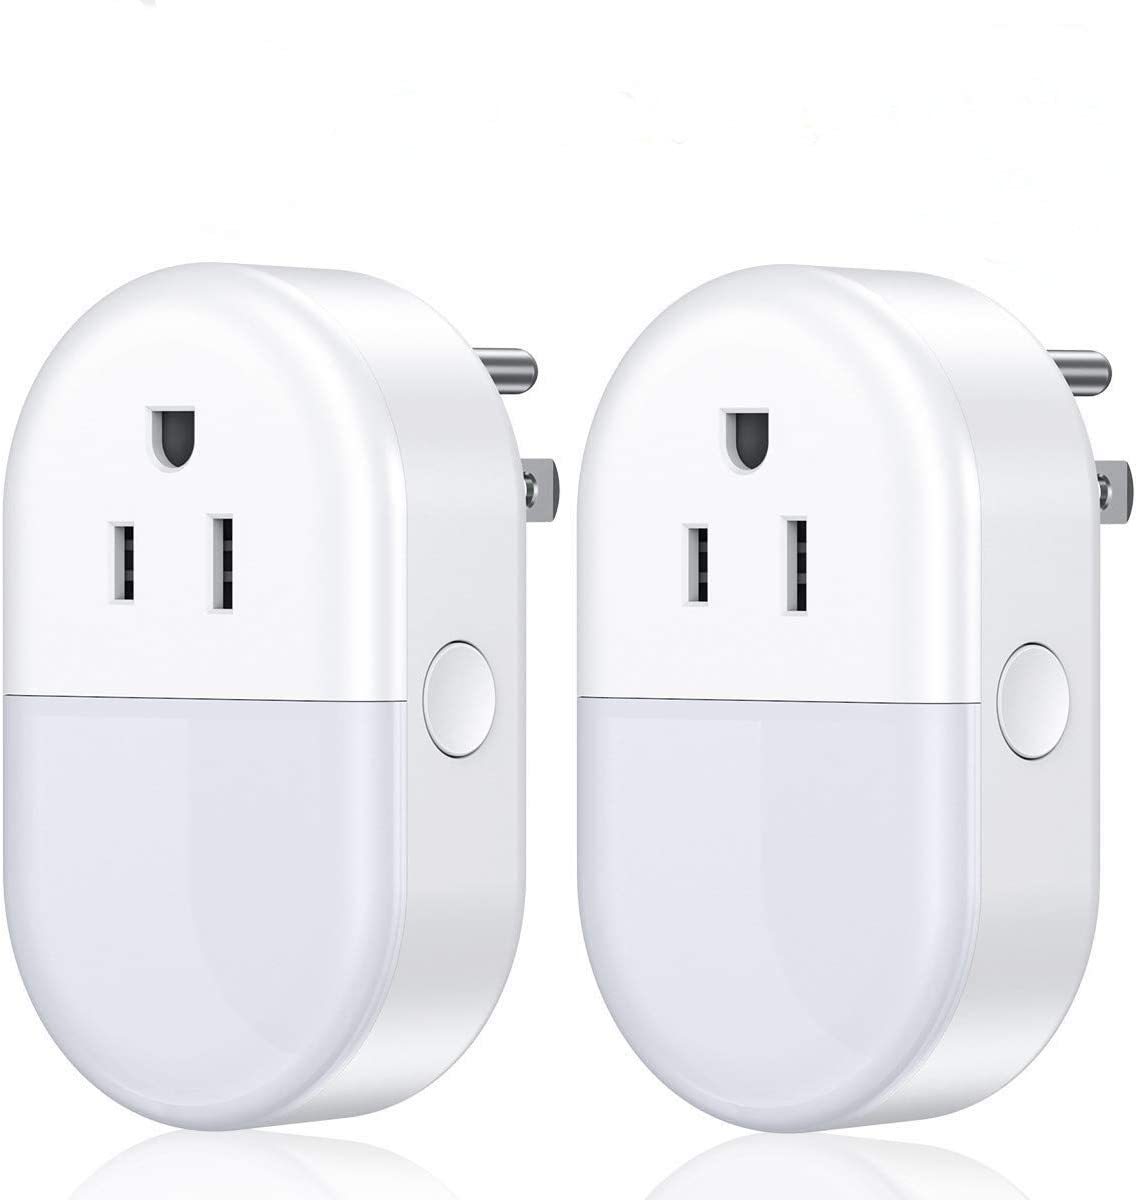 POWERADD Smart Plug,Wifi Smart Outlet Plug with Night Light That Works with Alexa,Google Home,Echo,Remote Control Wireless Smart Switch Socket 2.4Ghz 2 Pack